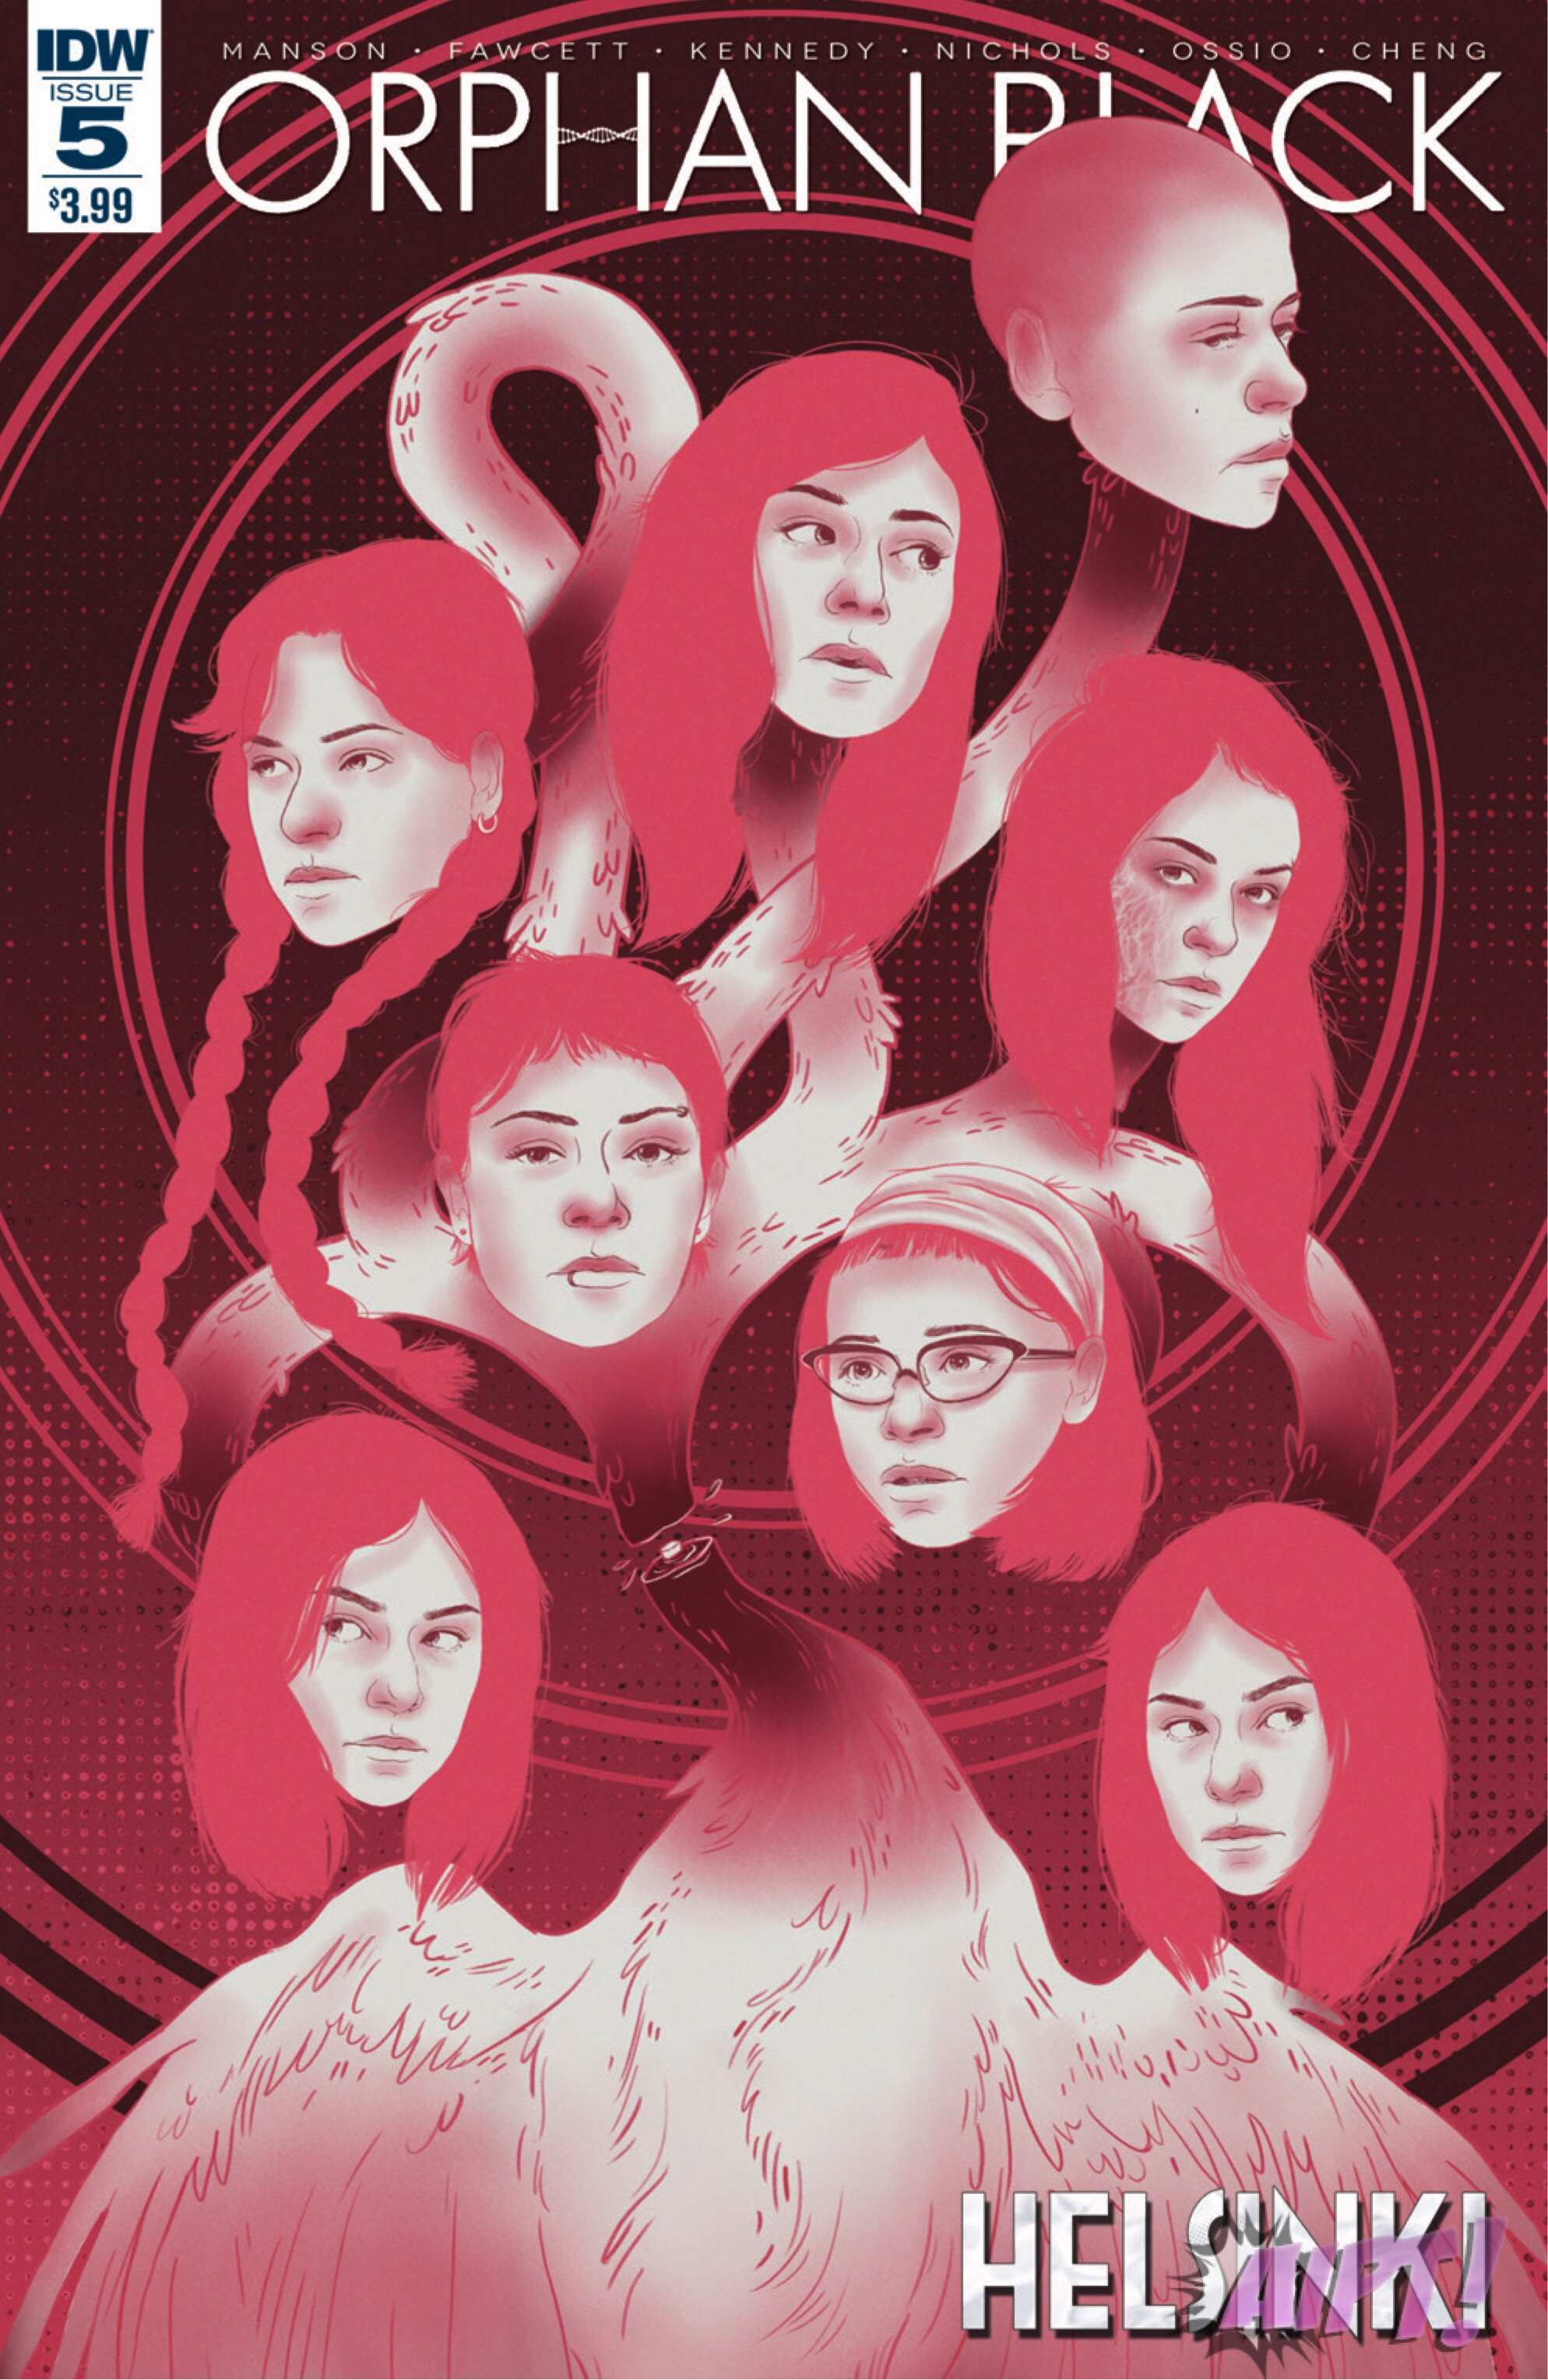 [EXCLUSIVE] IDW Preview: Orphan Black: Helsinki #5